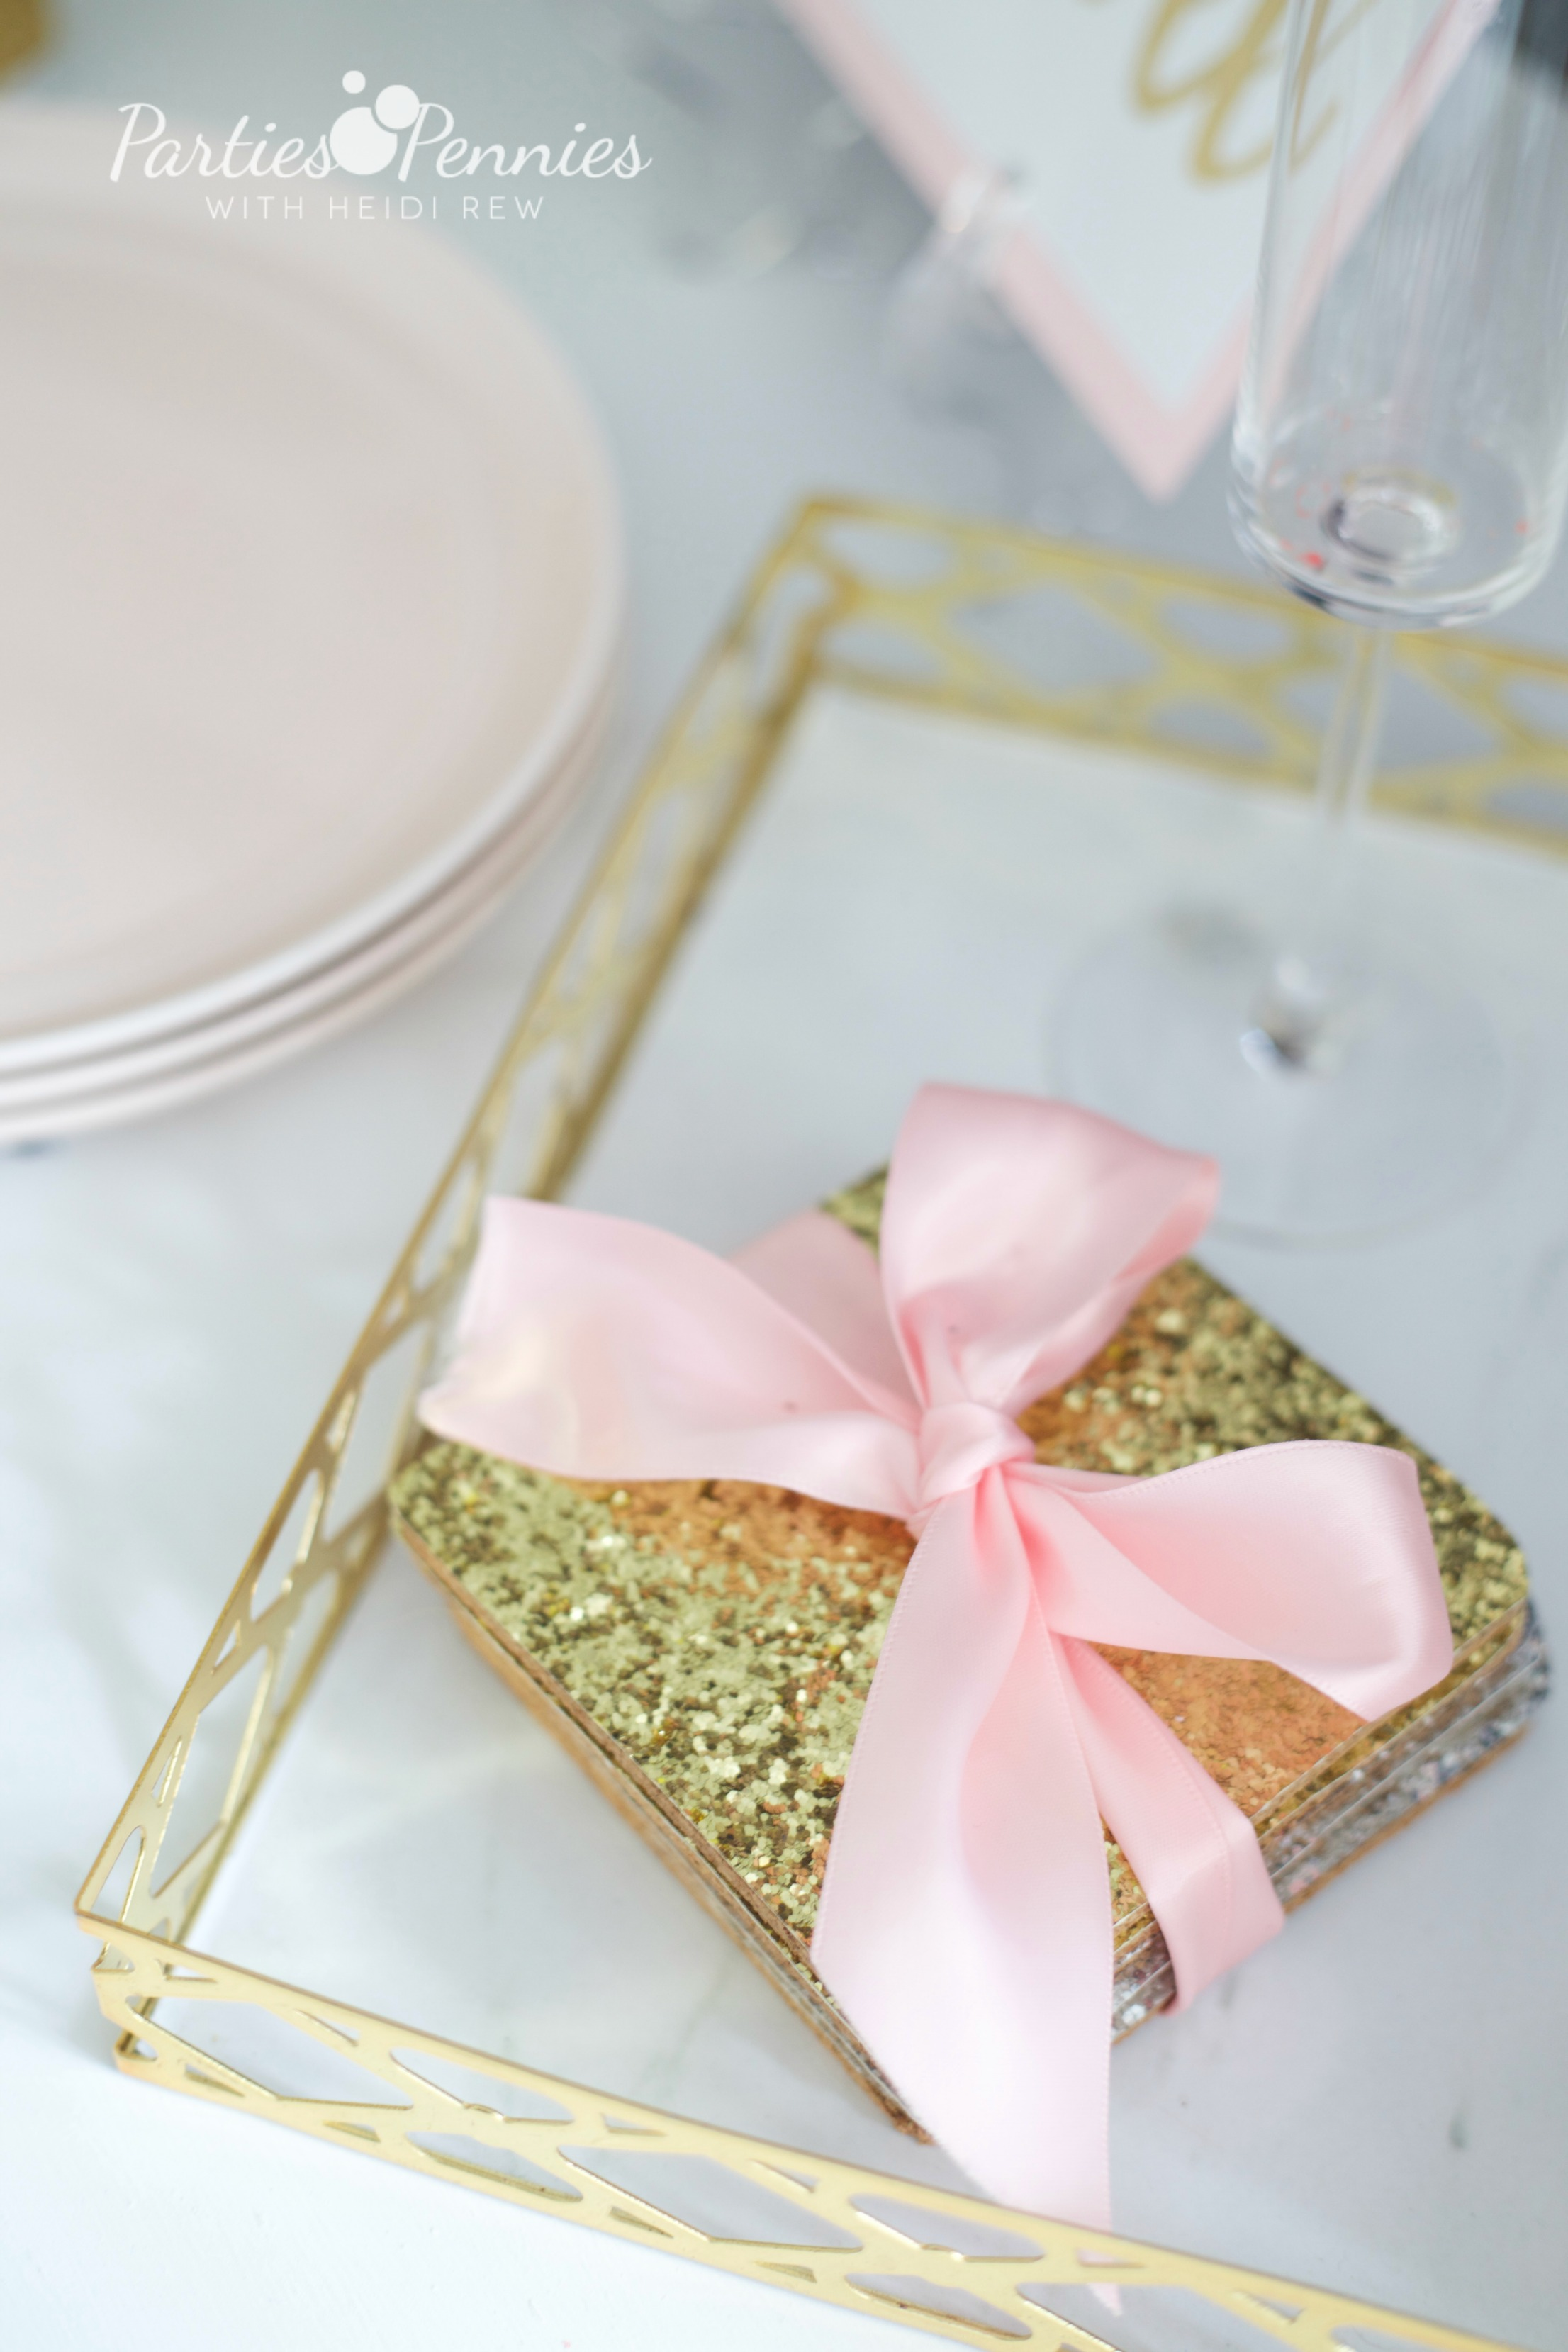 6 Budget-Friendly New Year's Eve Party Ideas by PartiesforPennies.com | DIY Glitter Coasters | NYE, Navy and Pink,